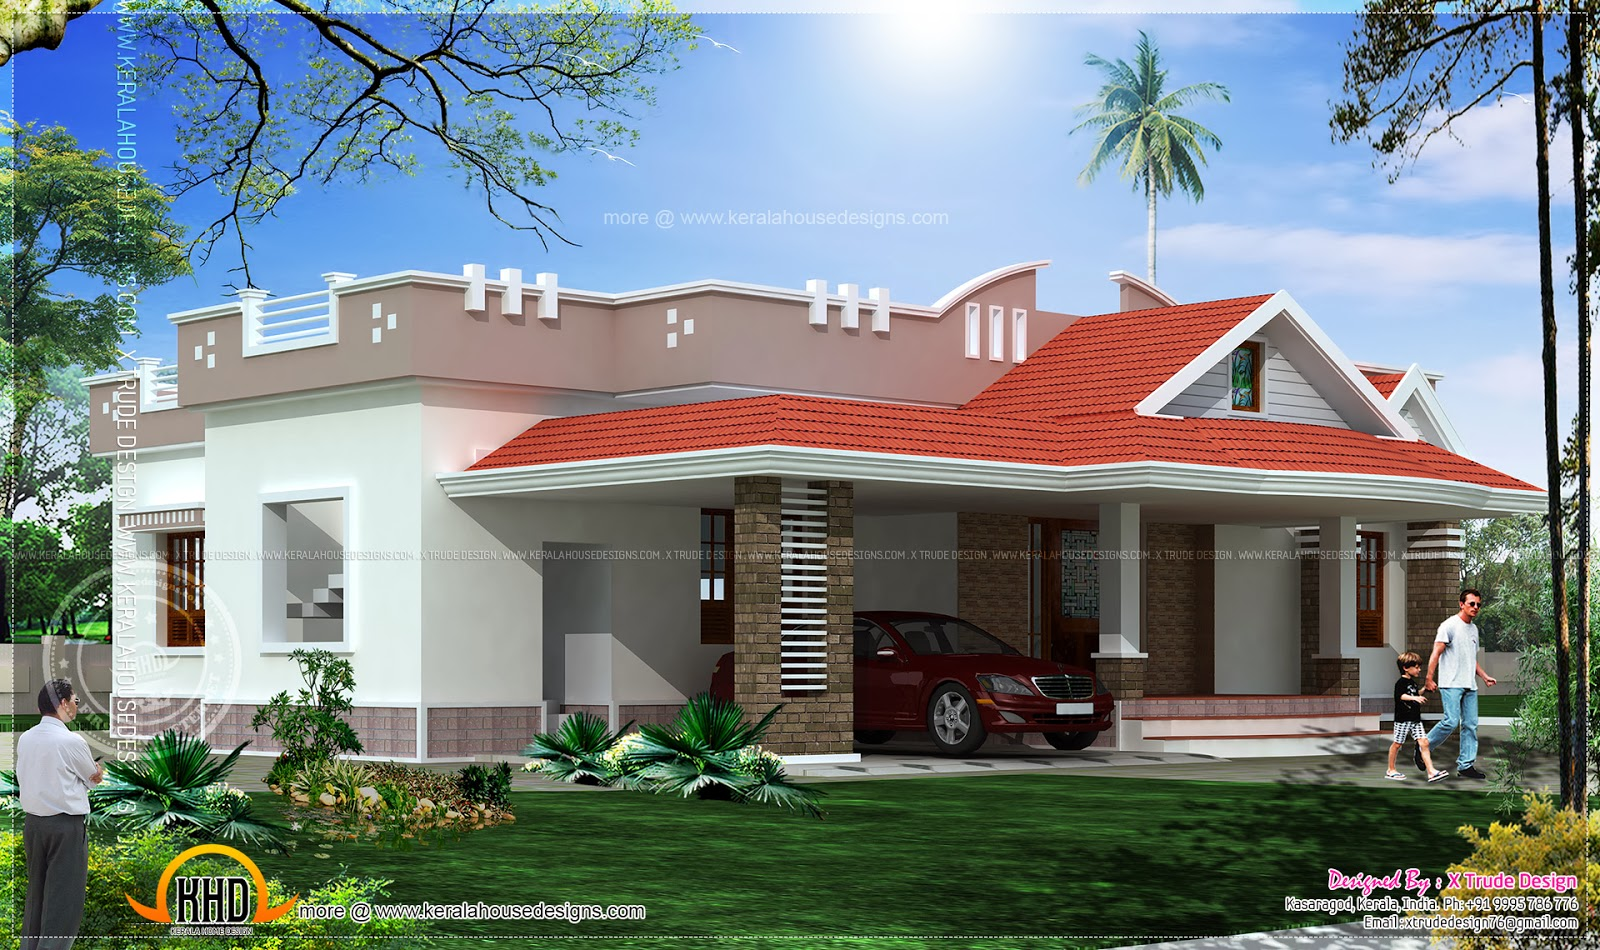 Single storied 2 bedroom house elevation kerala home for Single floor house designs tamilnadu